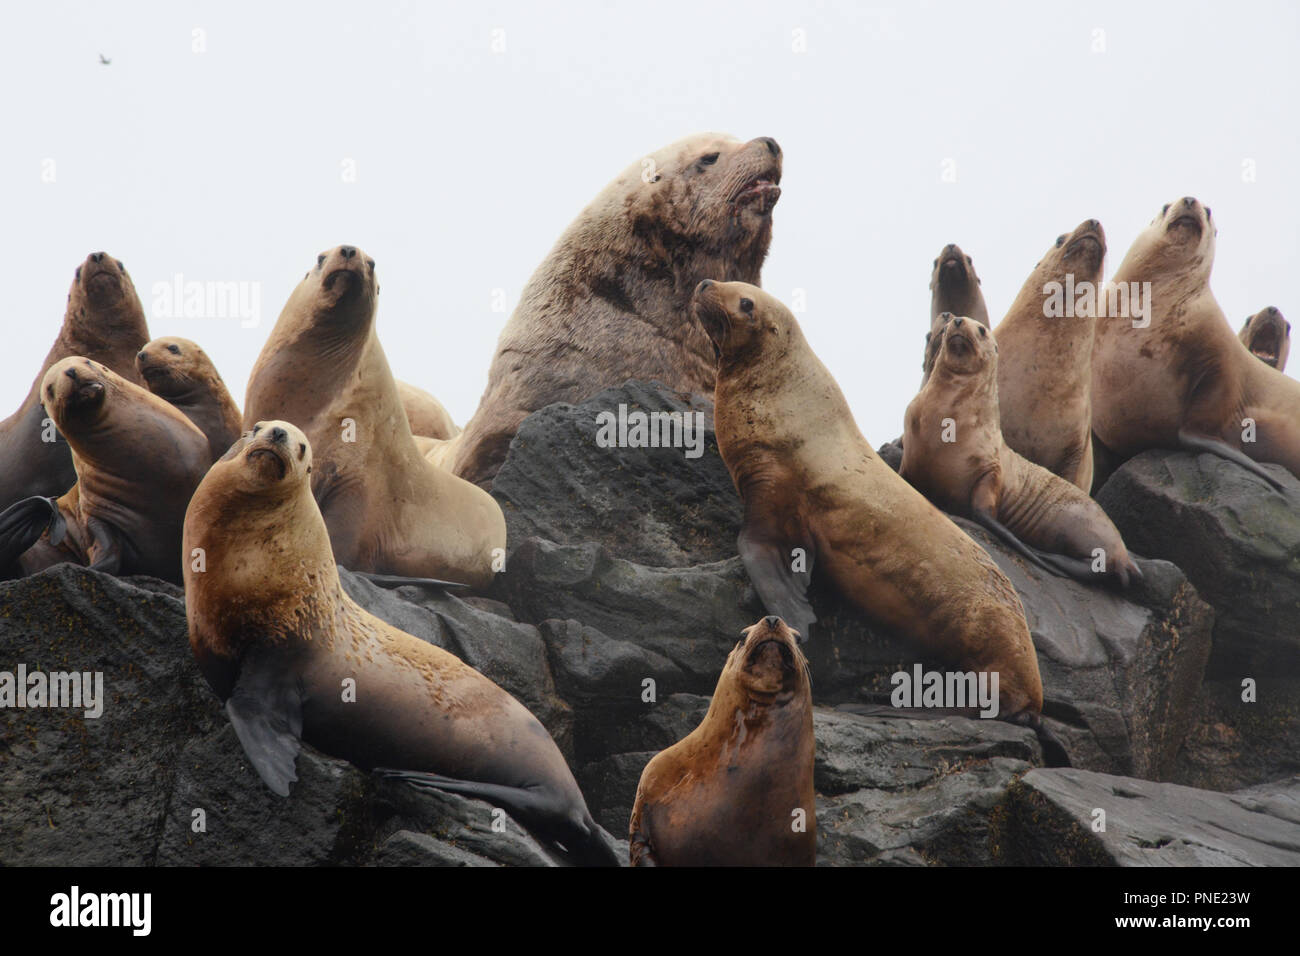 A colony of steller sea lions, including a large male (bull), on a rookery during breeding season, in the Aleutian Islands, Bering Sea, Alaska. Stock Photo